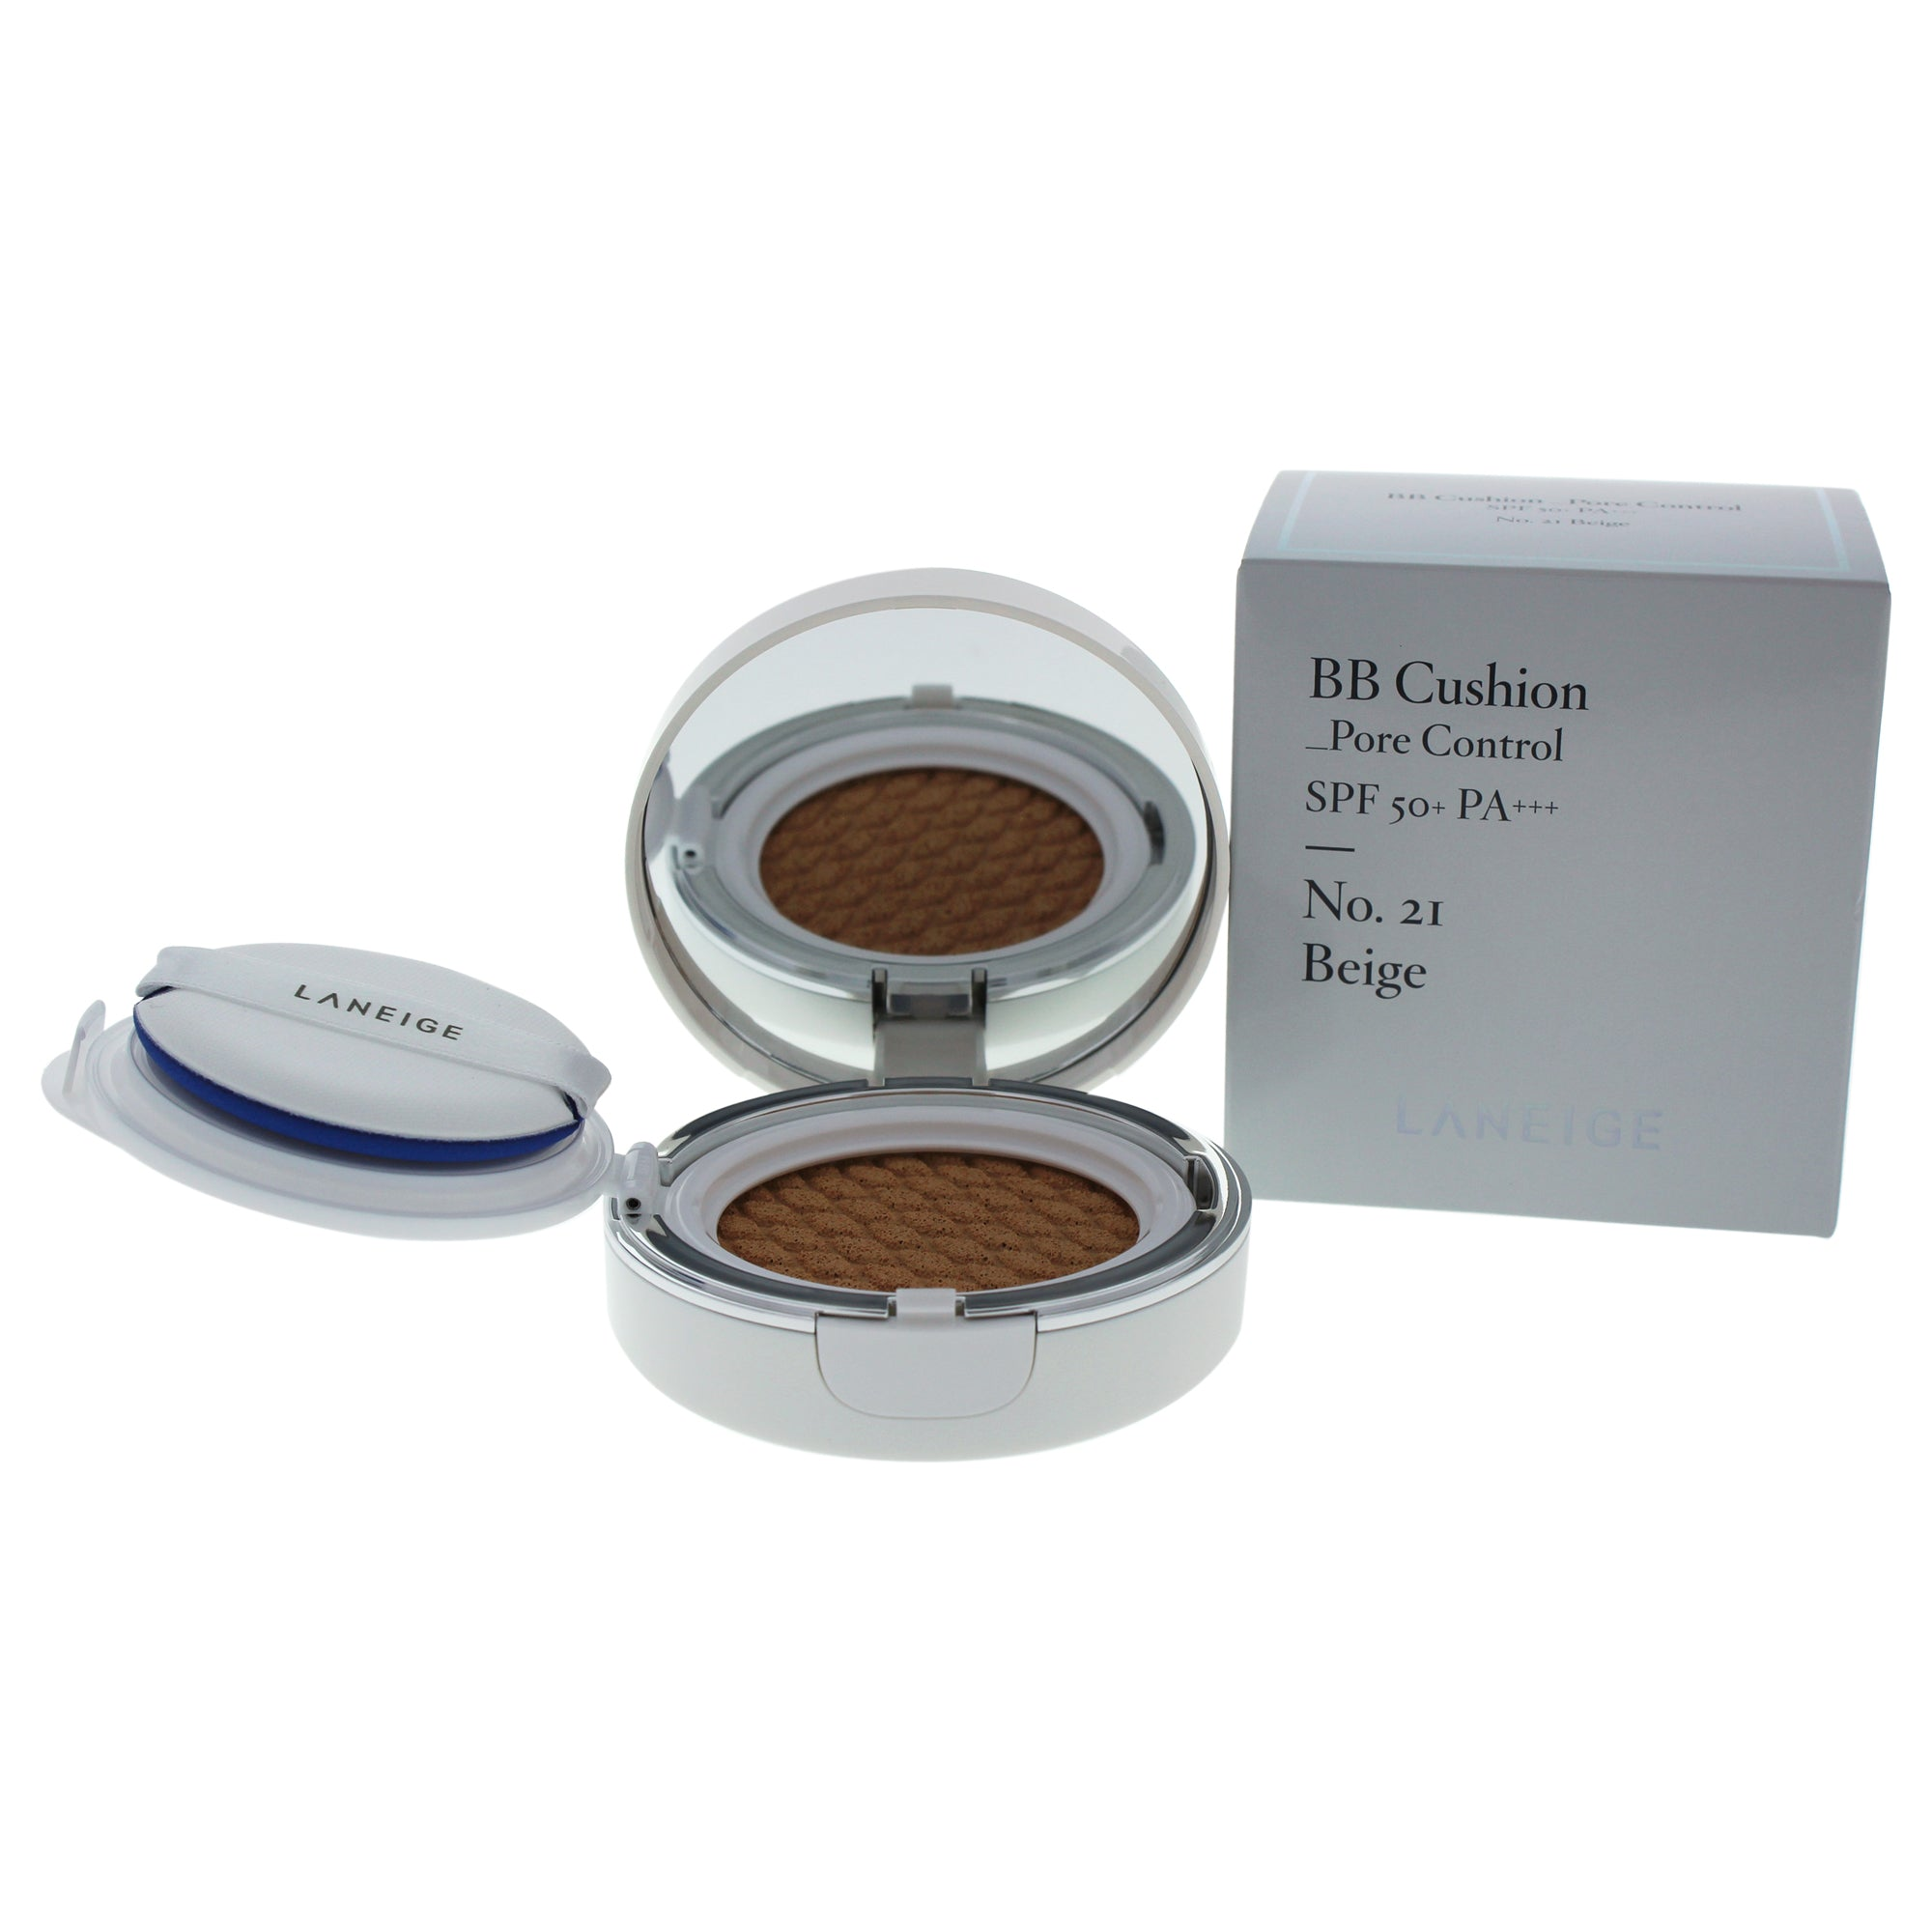 Laneige BB Cushion Pore Control Foundation SPF 50